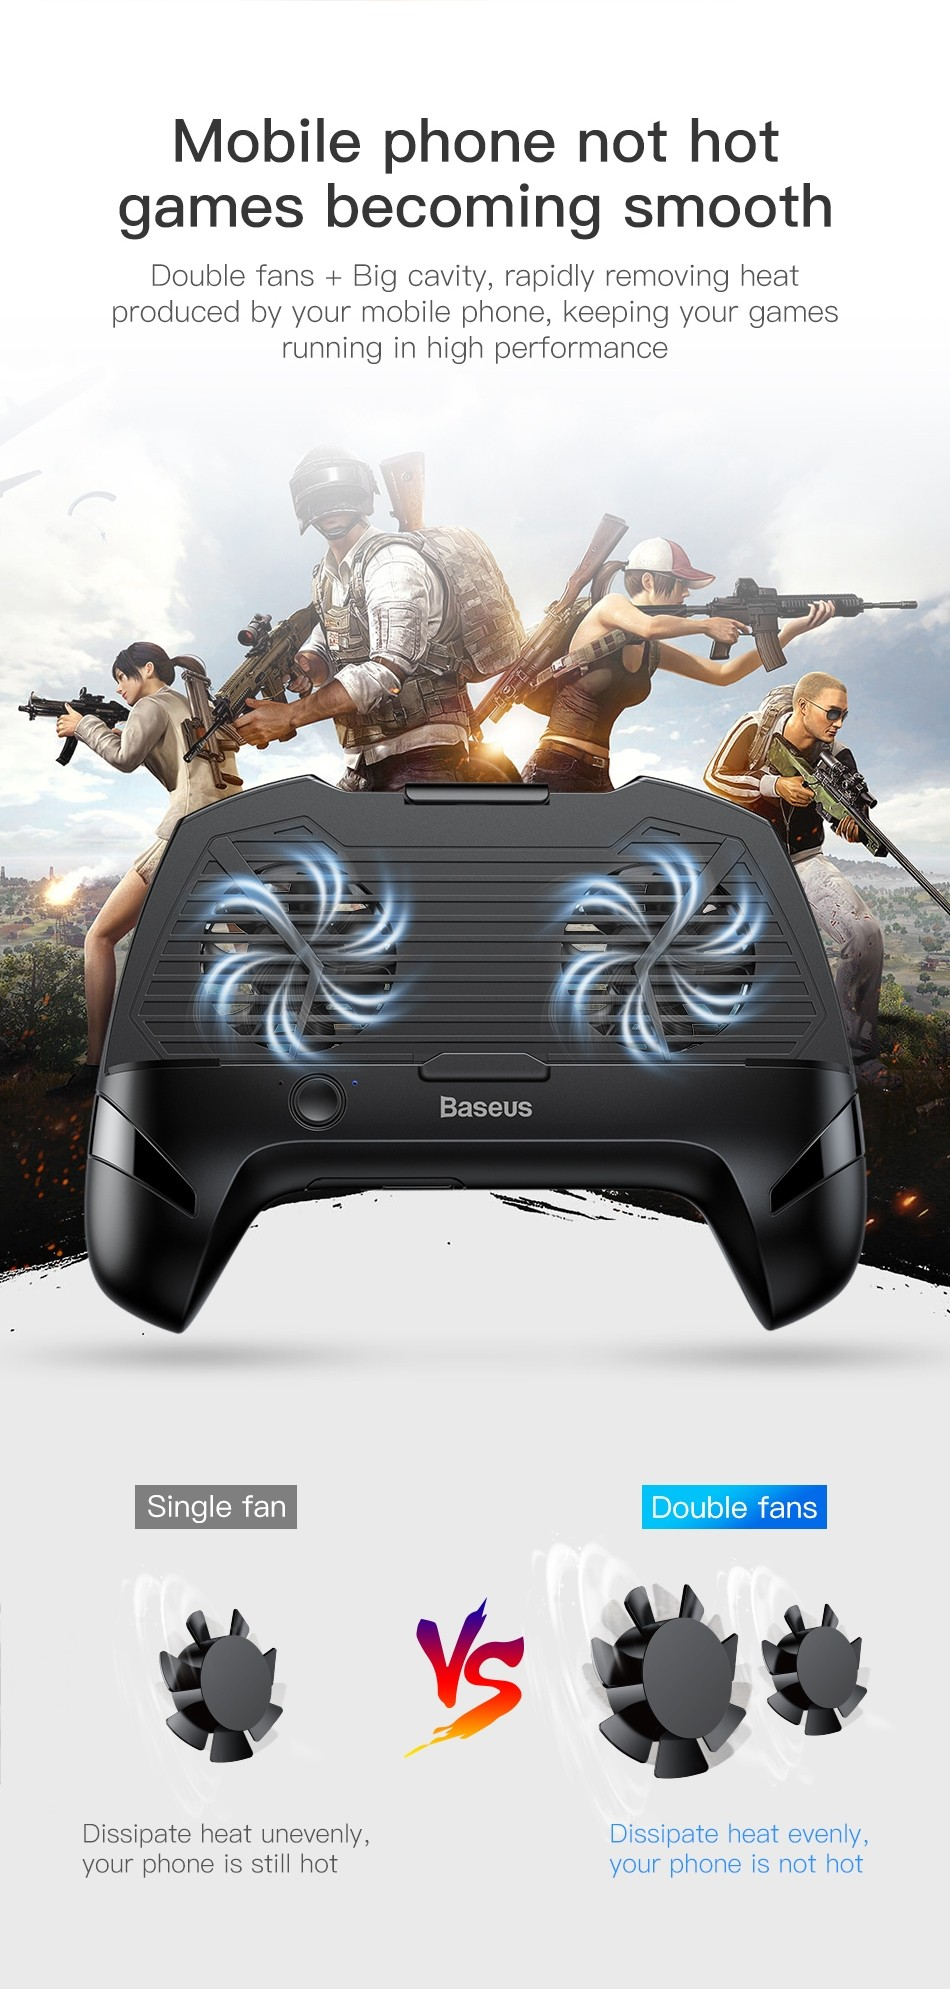 Baseus Mobile Phone Cooler Gamepad (17)